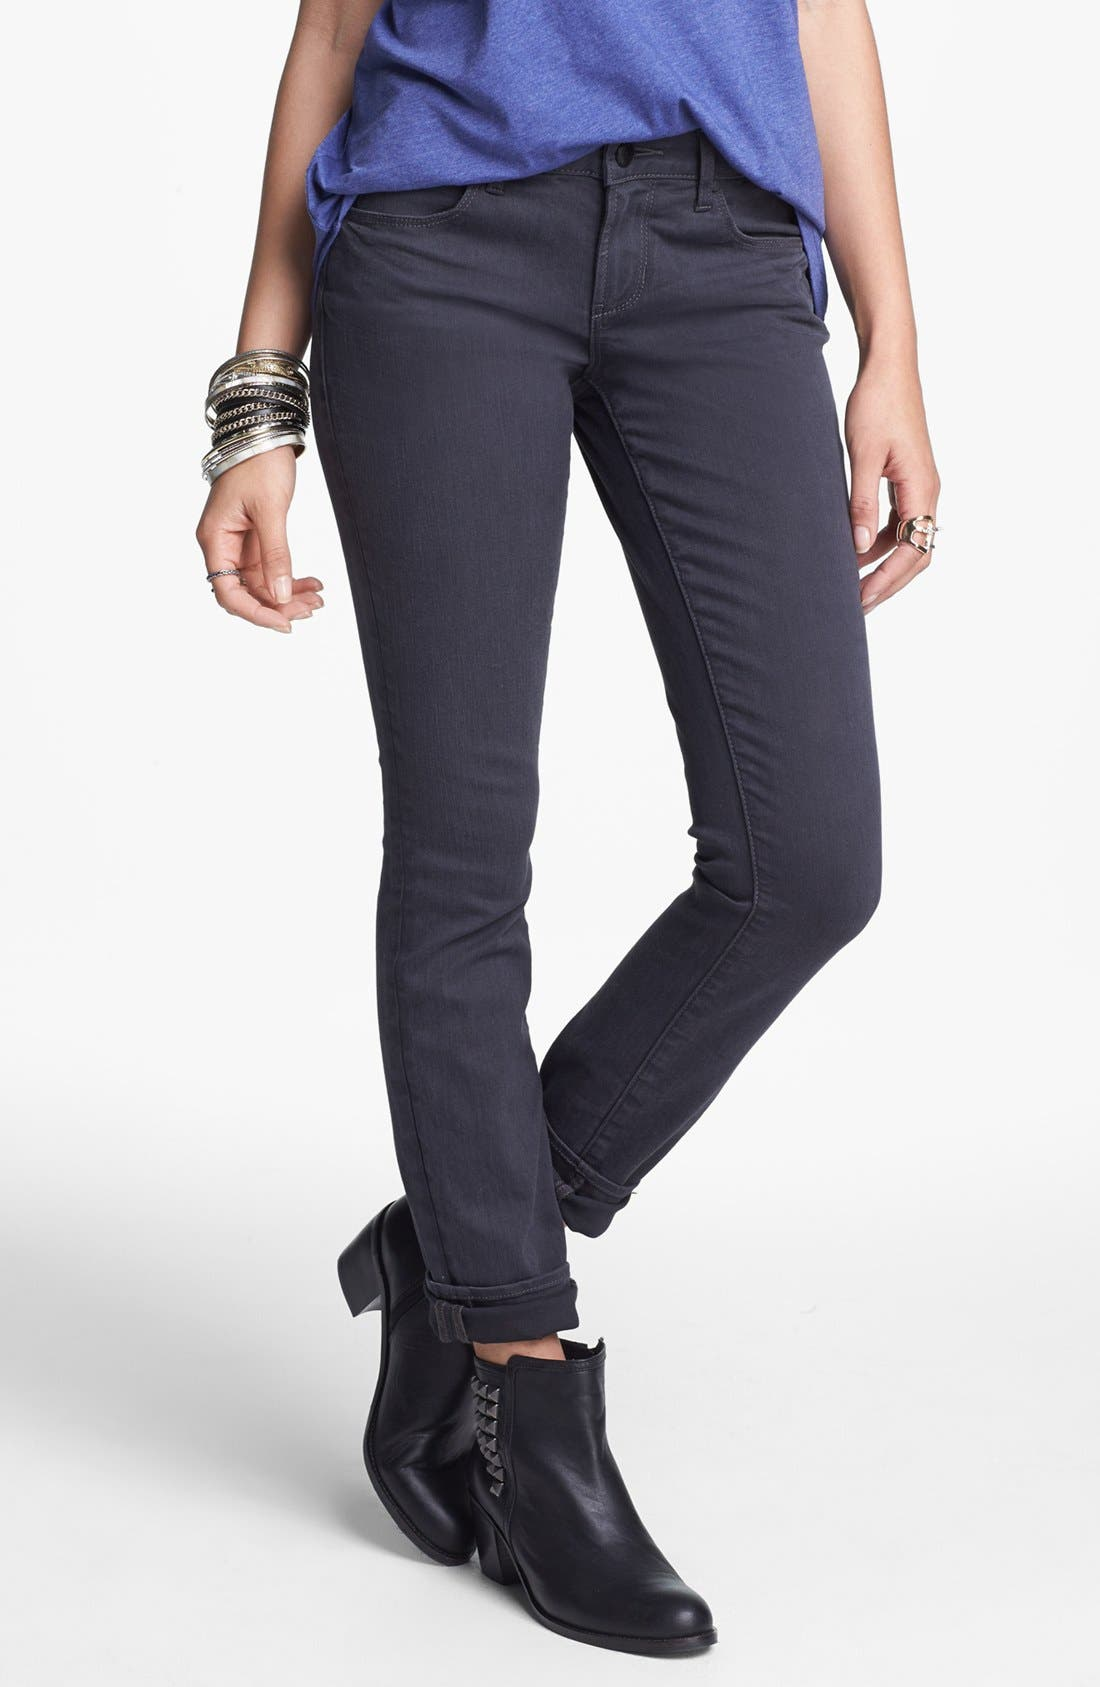 Alternate Image 1 Selected - Articles of Society 'Mya' Stretch Skinny Jeans (Charcoal) (Juniors)